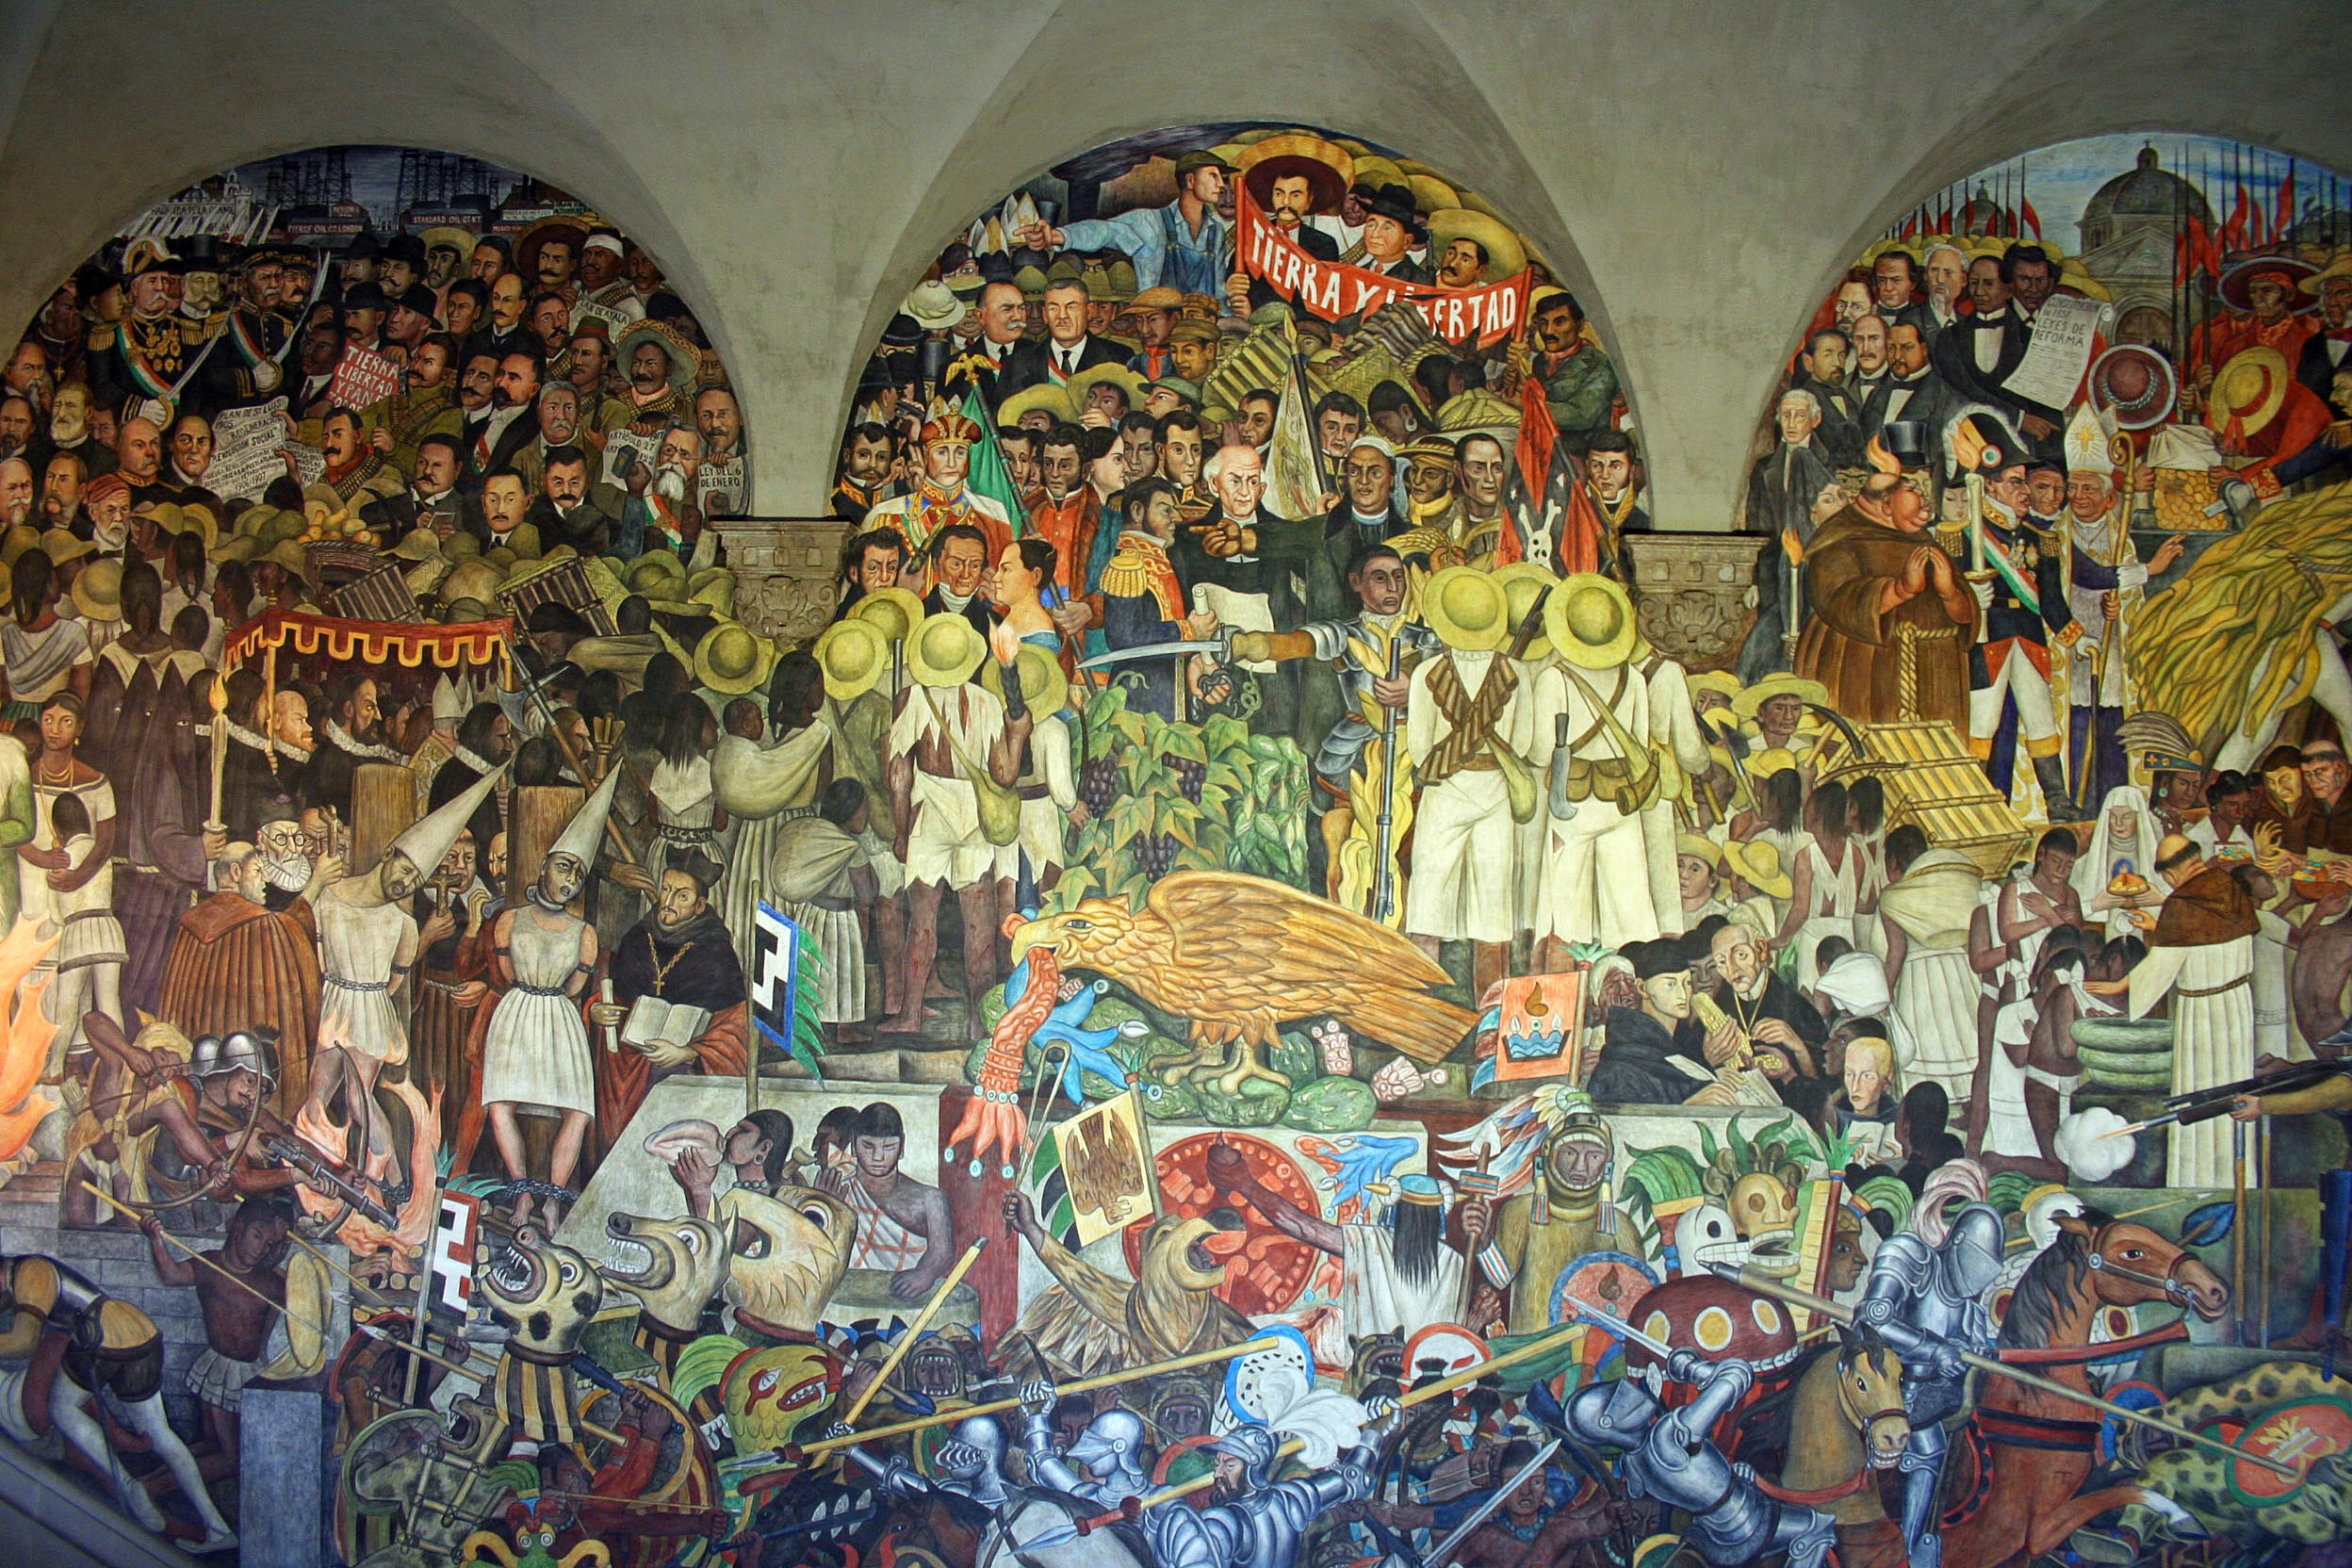 Diego rivera s vision realized and unrealized human in for El mural guadalajara jalisco